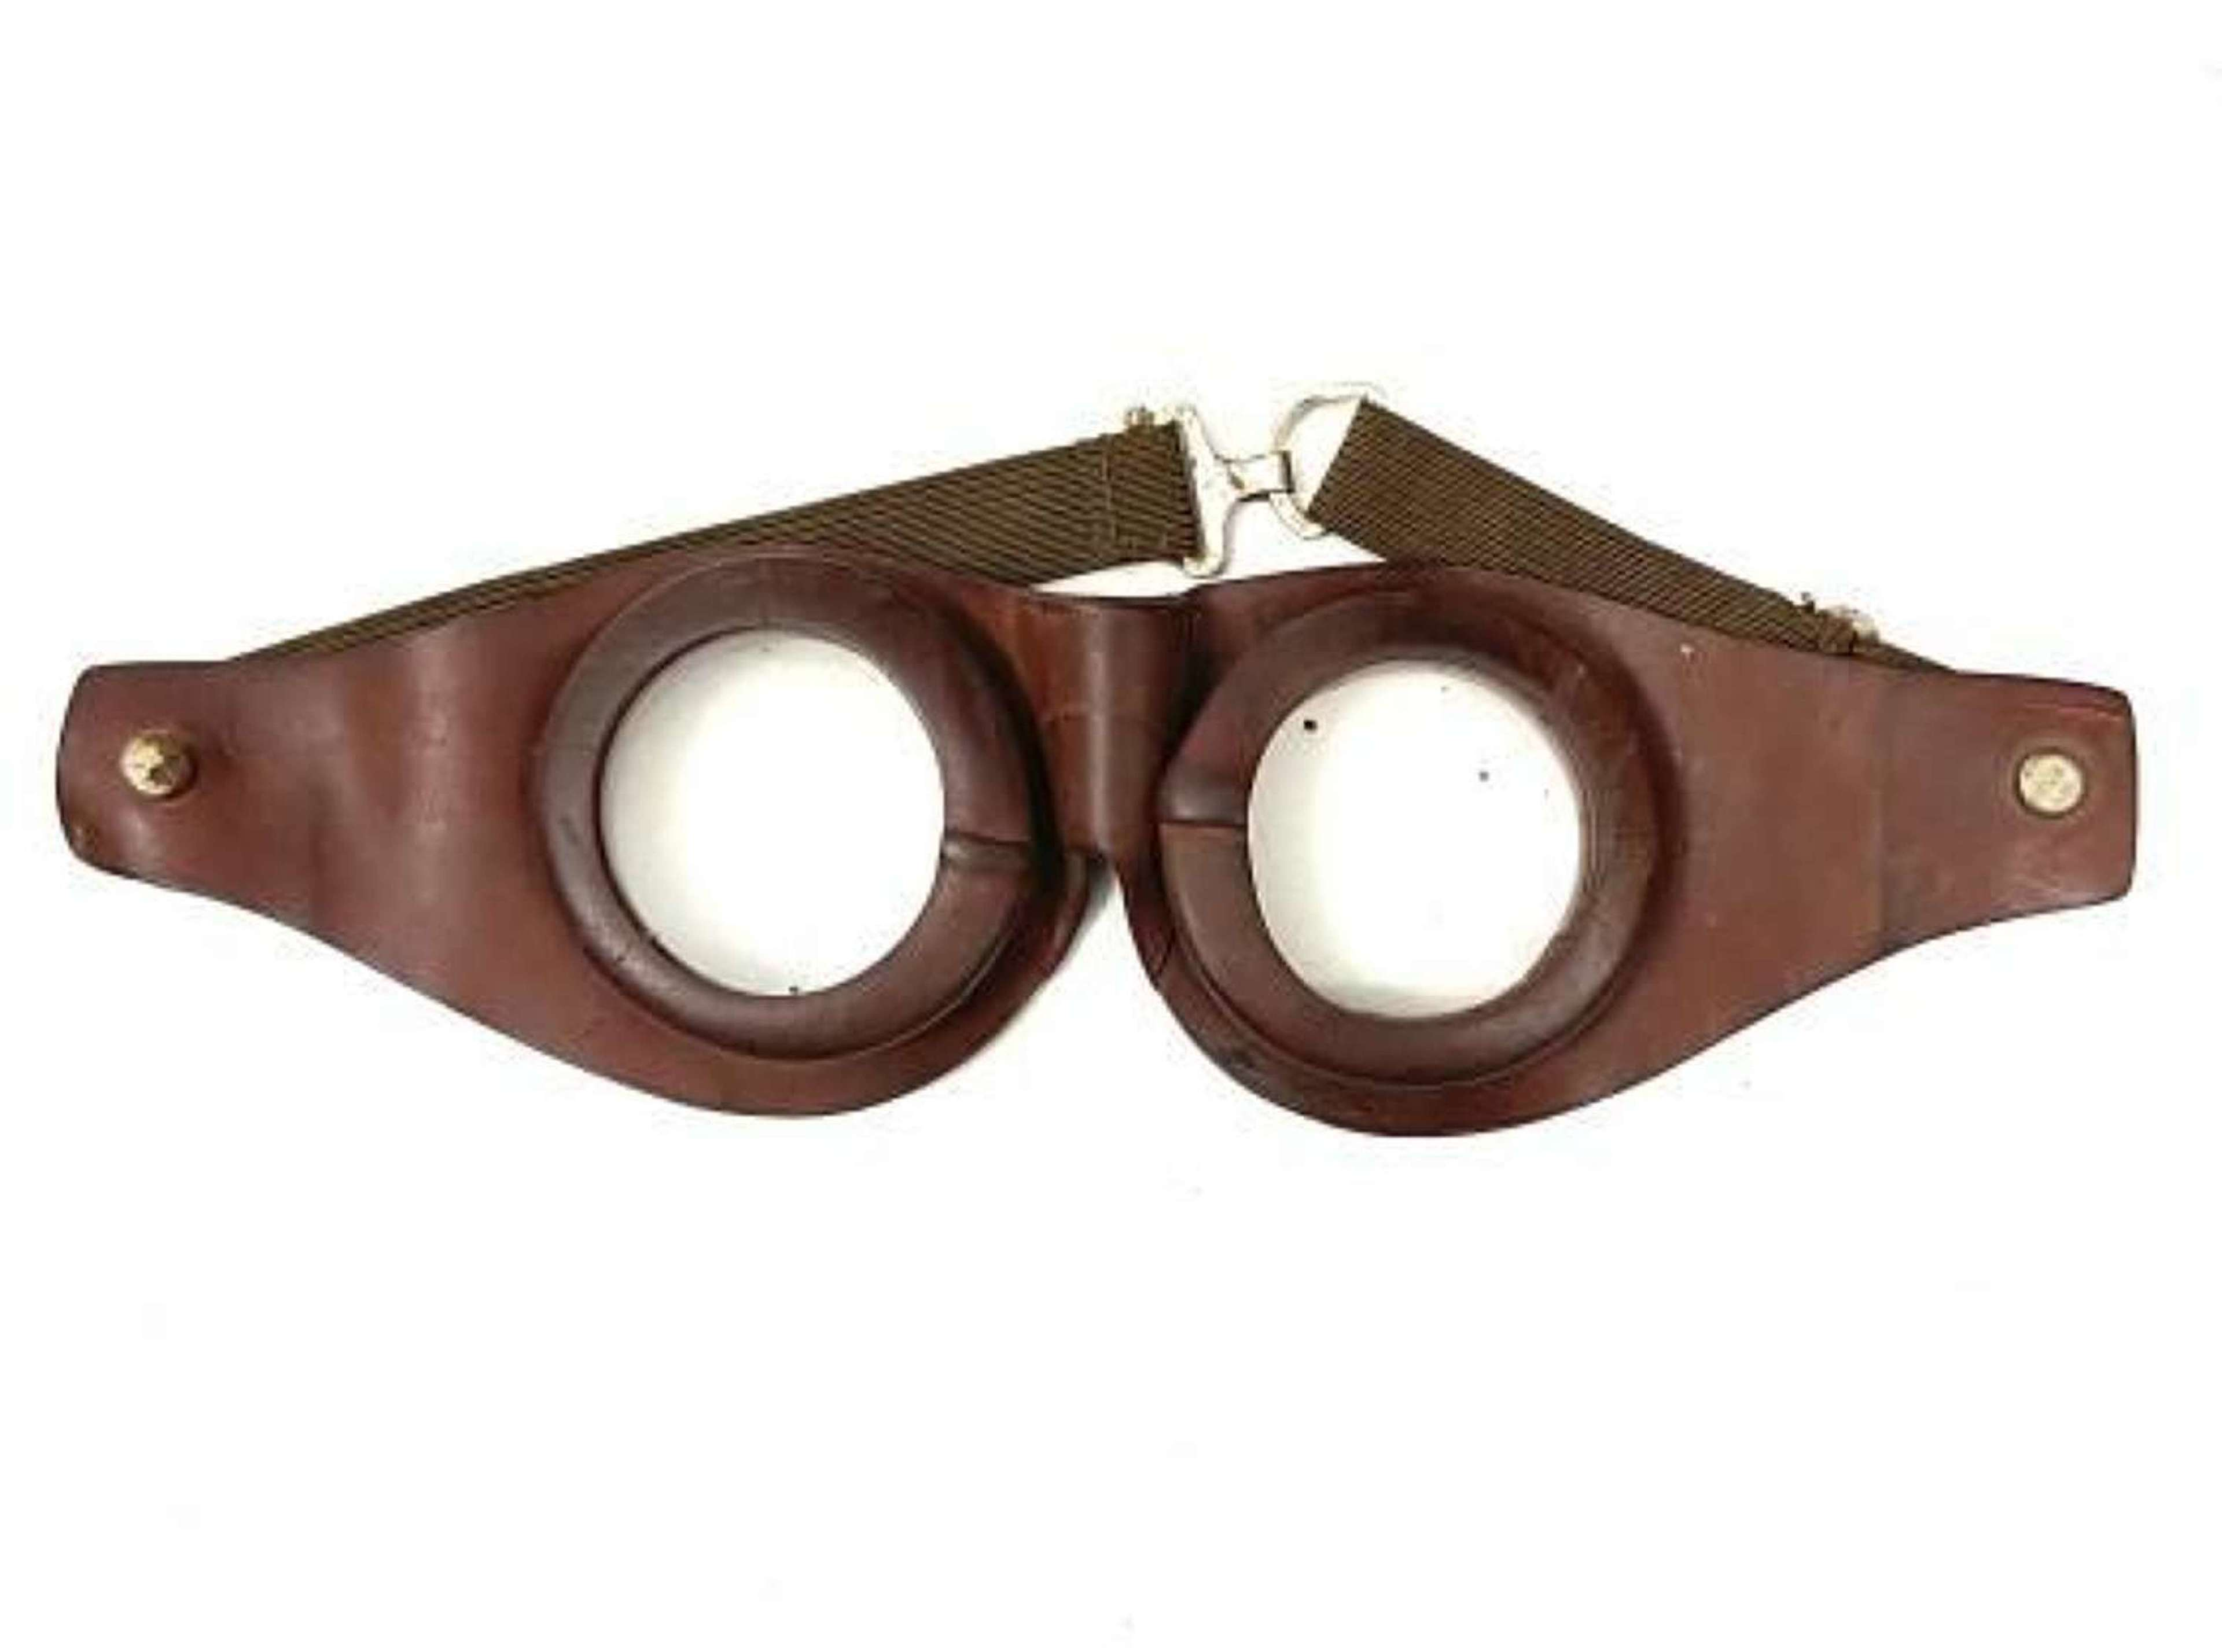 Original Early Great War Rubber Goggles - RFC MK 1